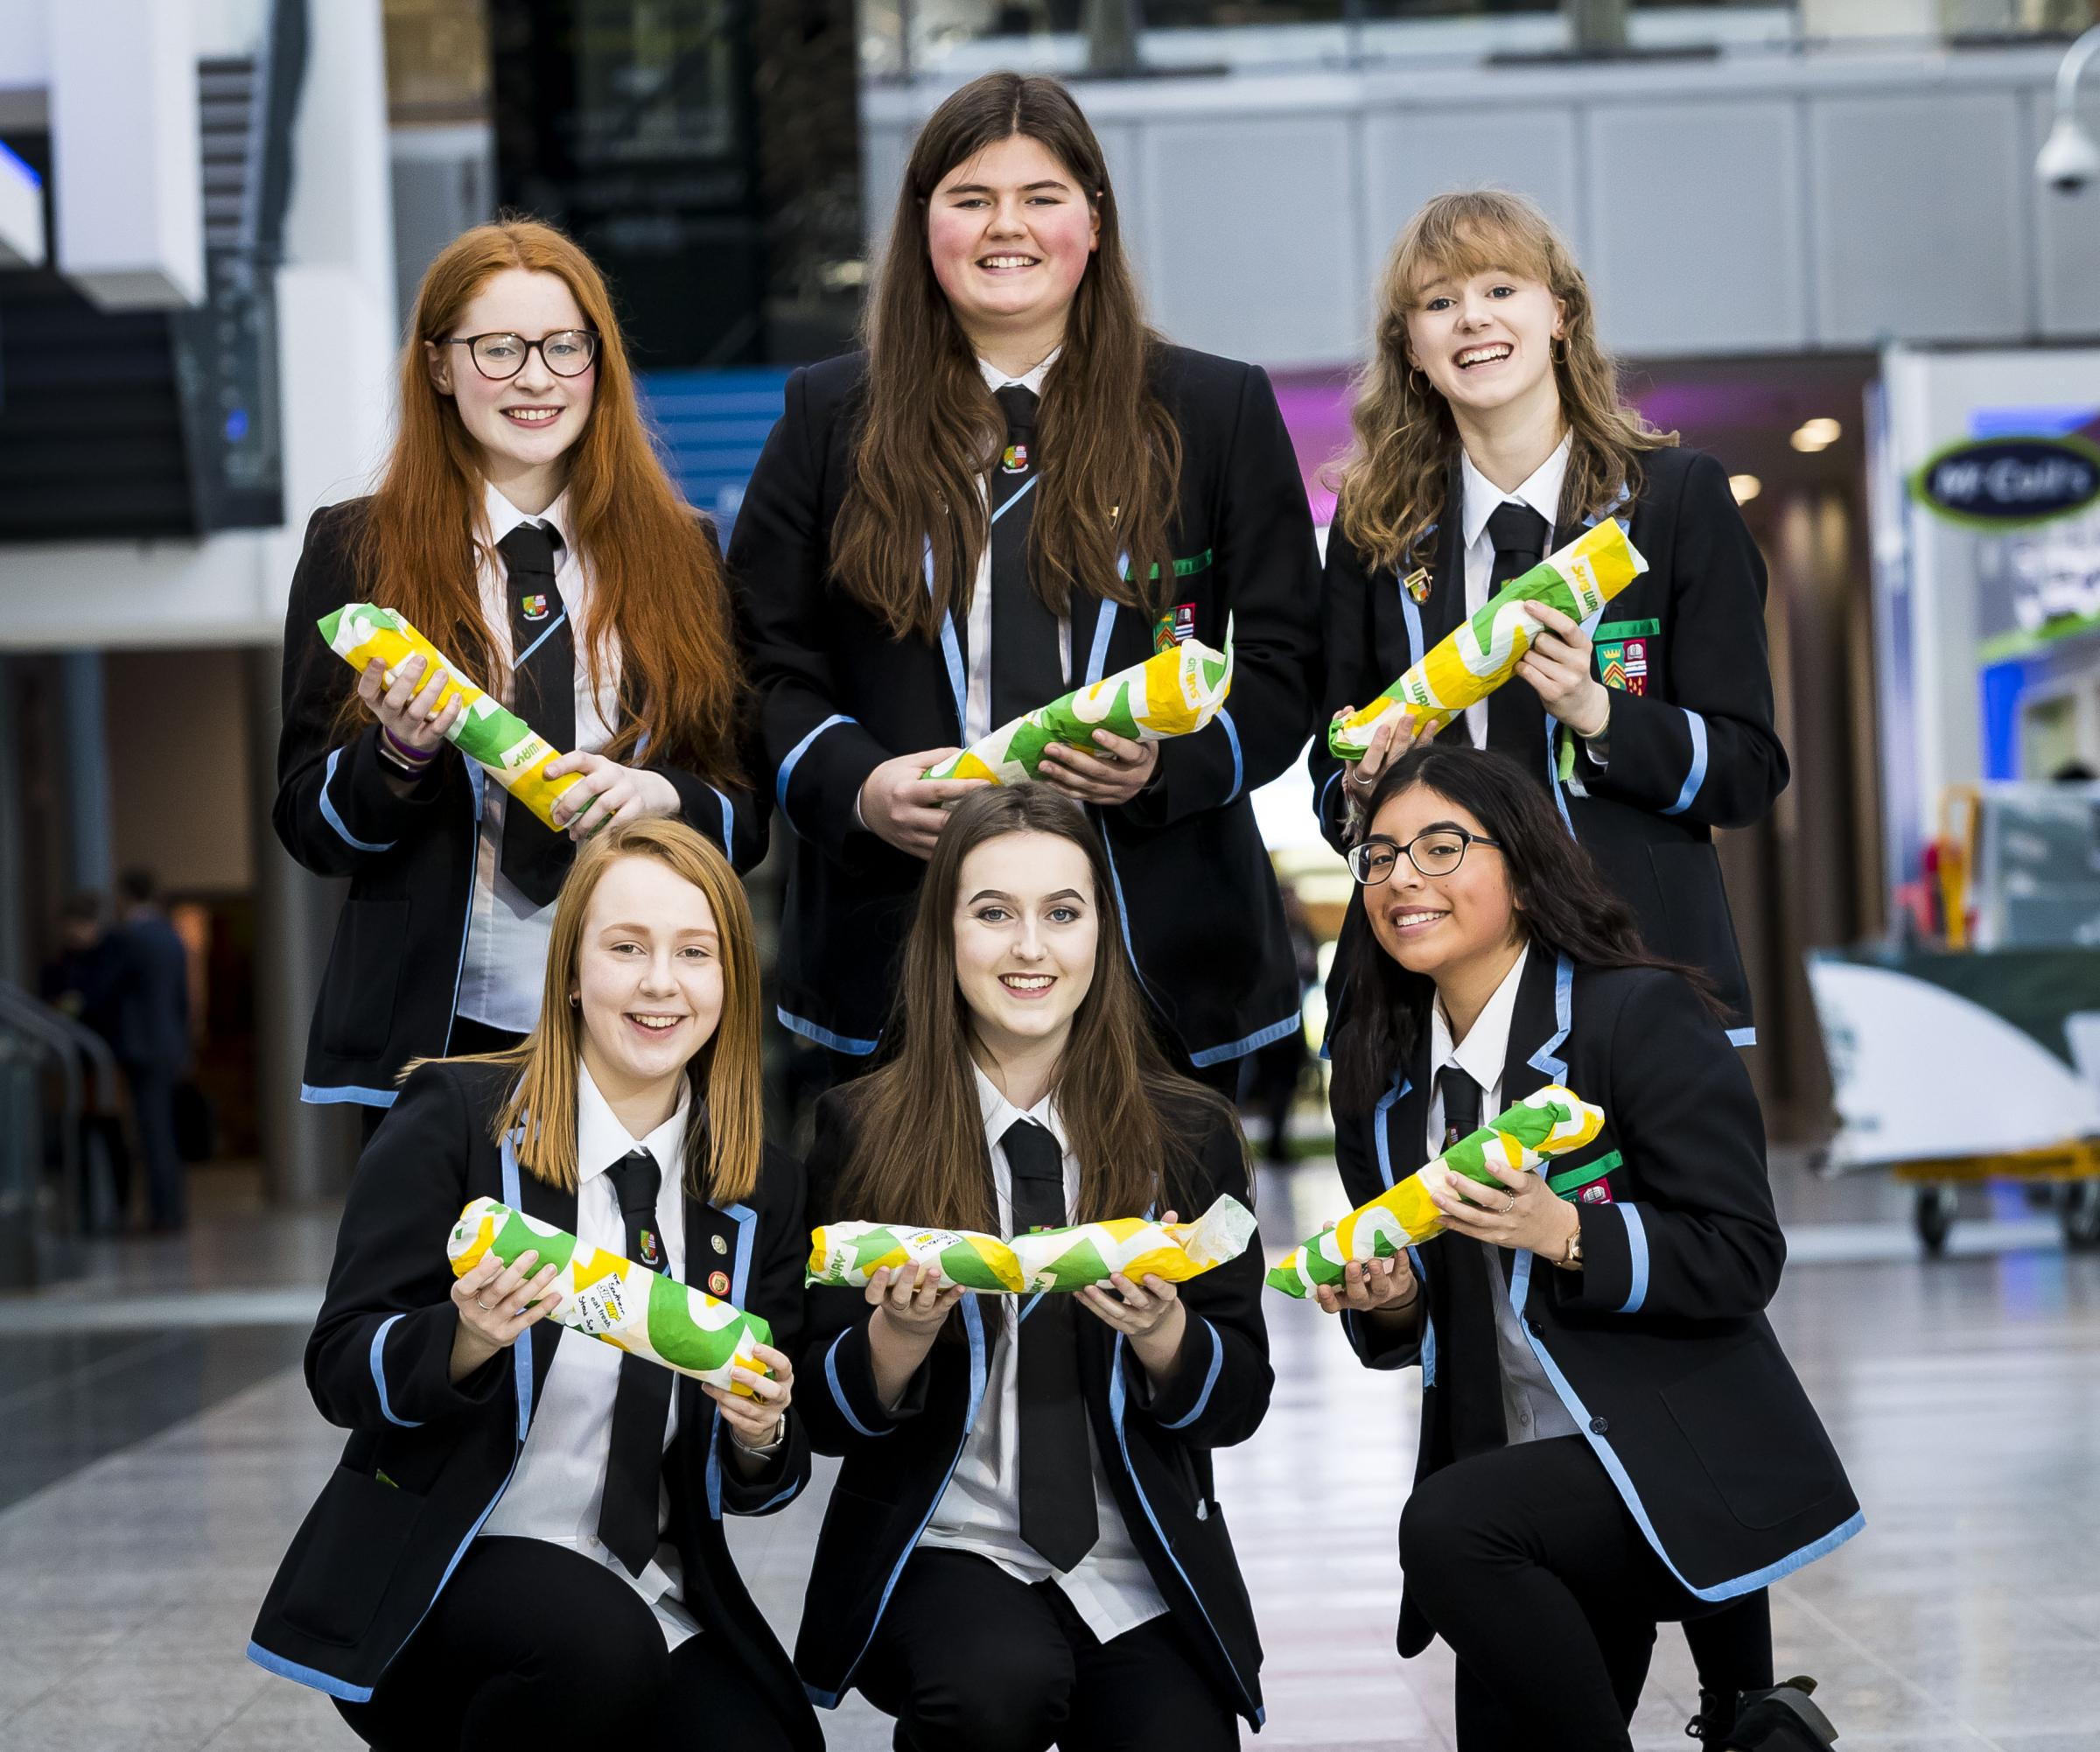 Dunblane High students win Subway competition